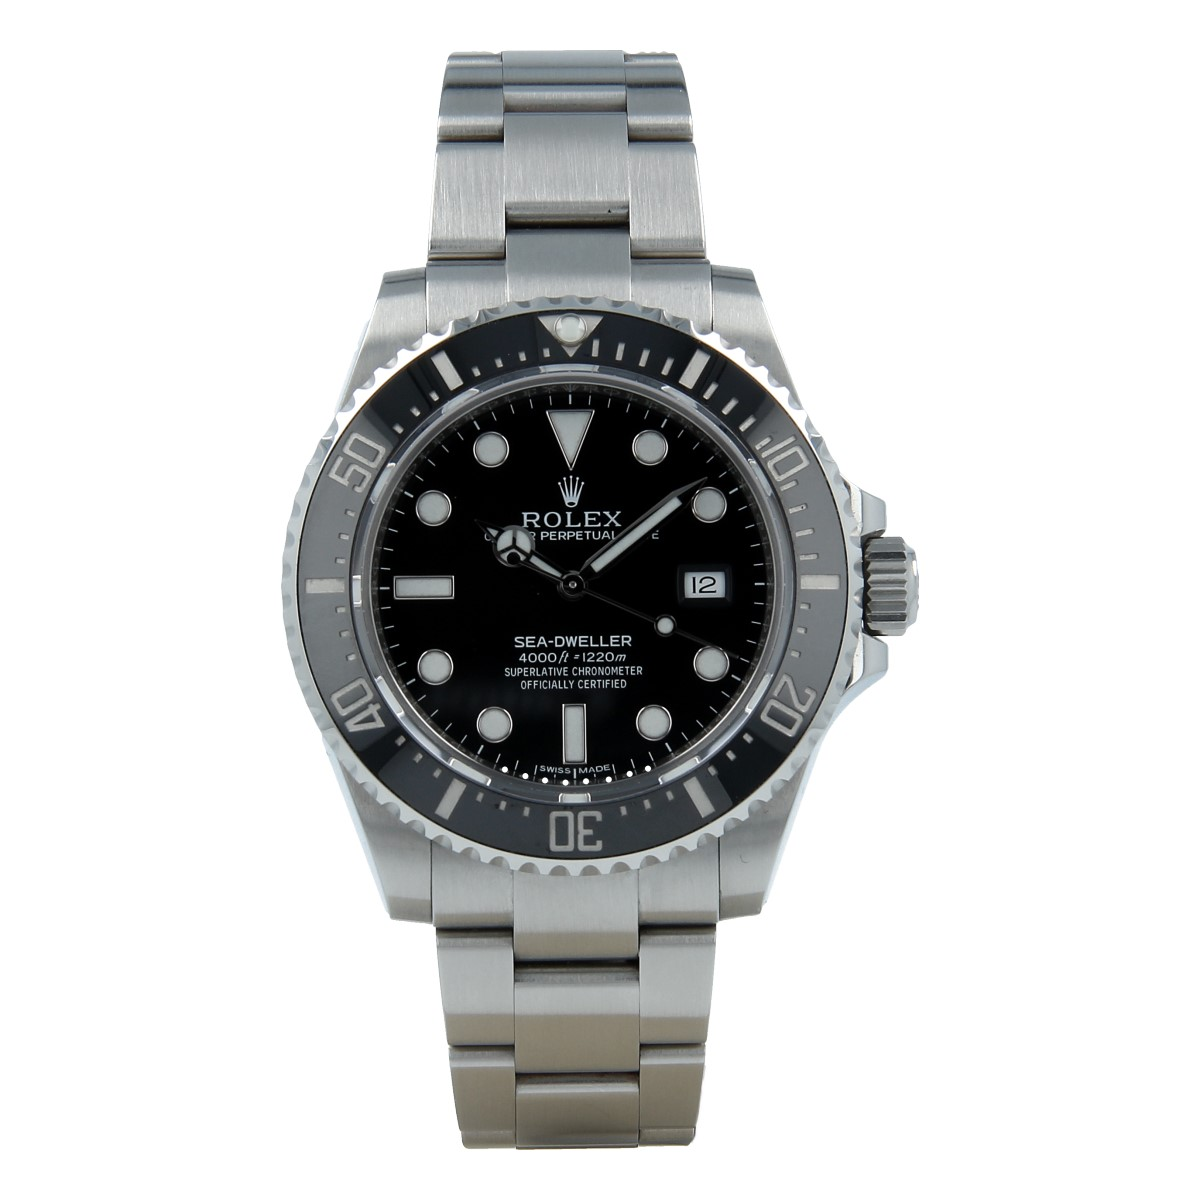 Rolex Sea-Dweller 116600    *Never Polished* | Buy second-hand Rolex watch